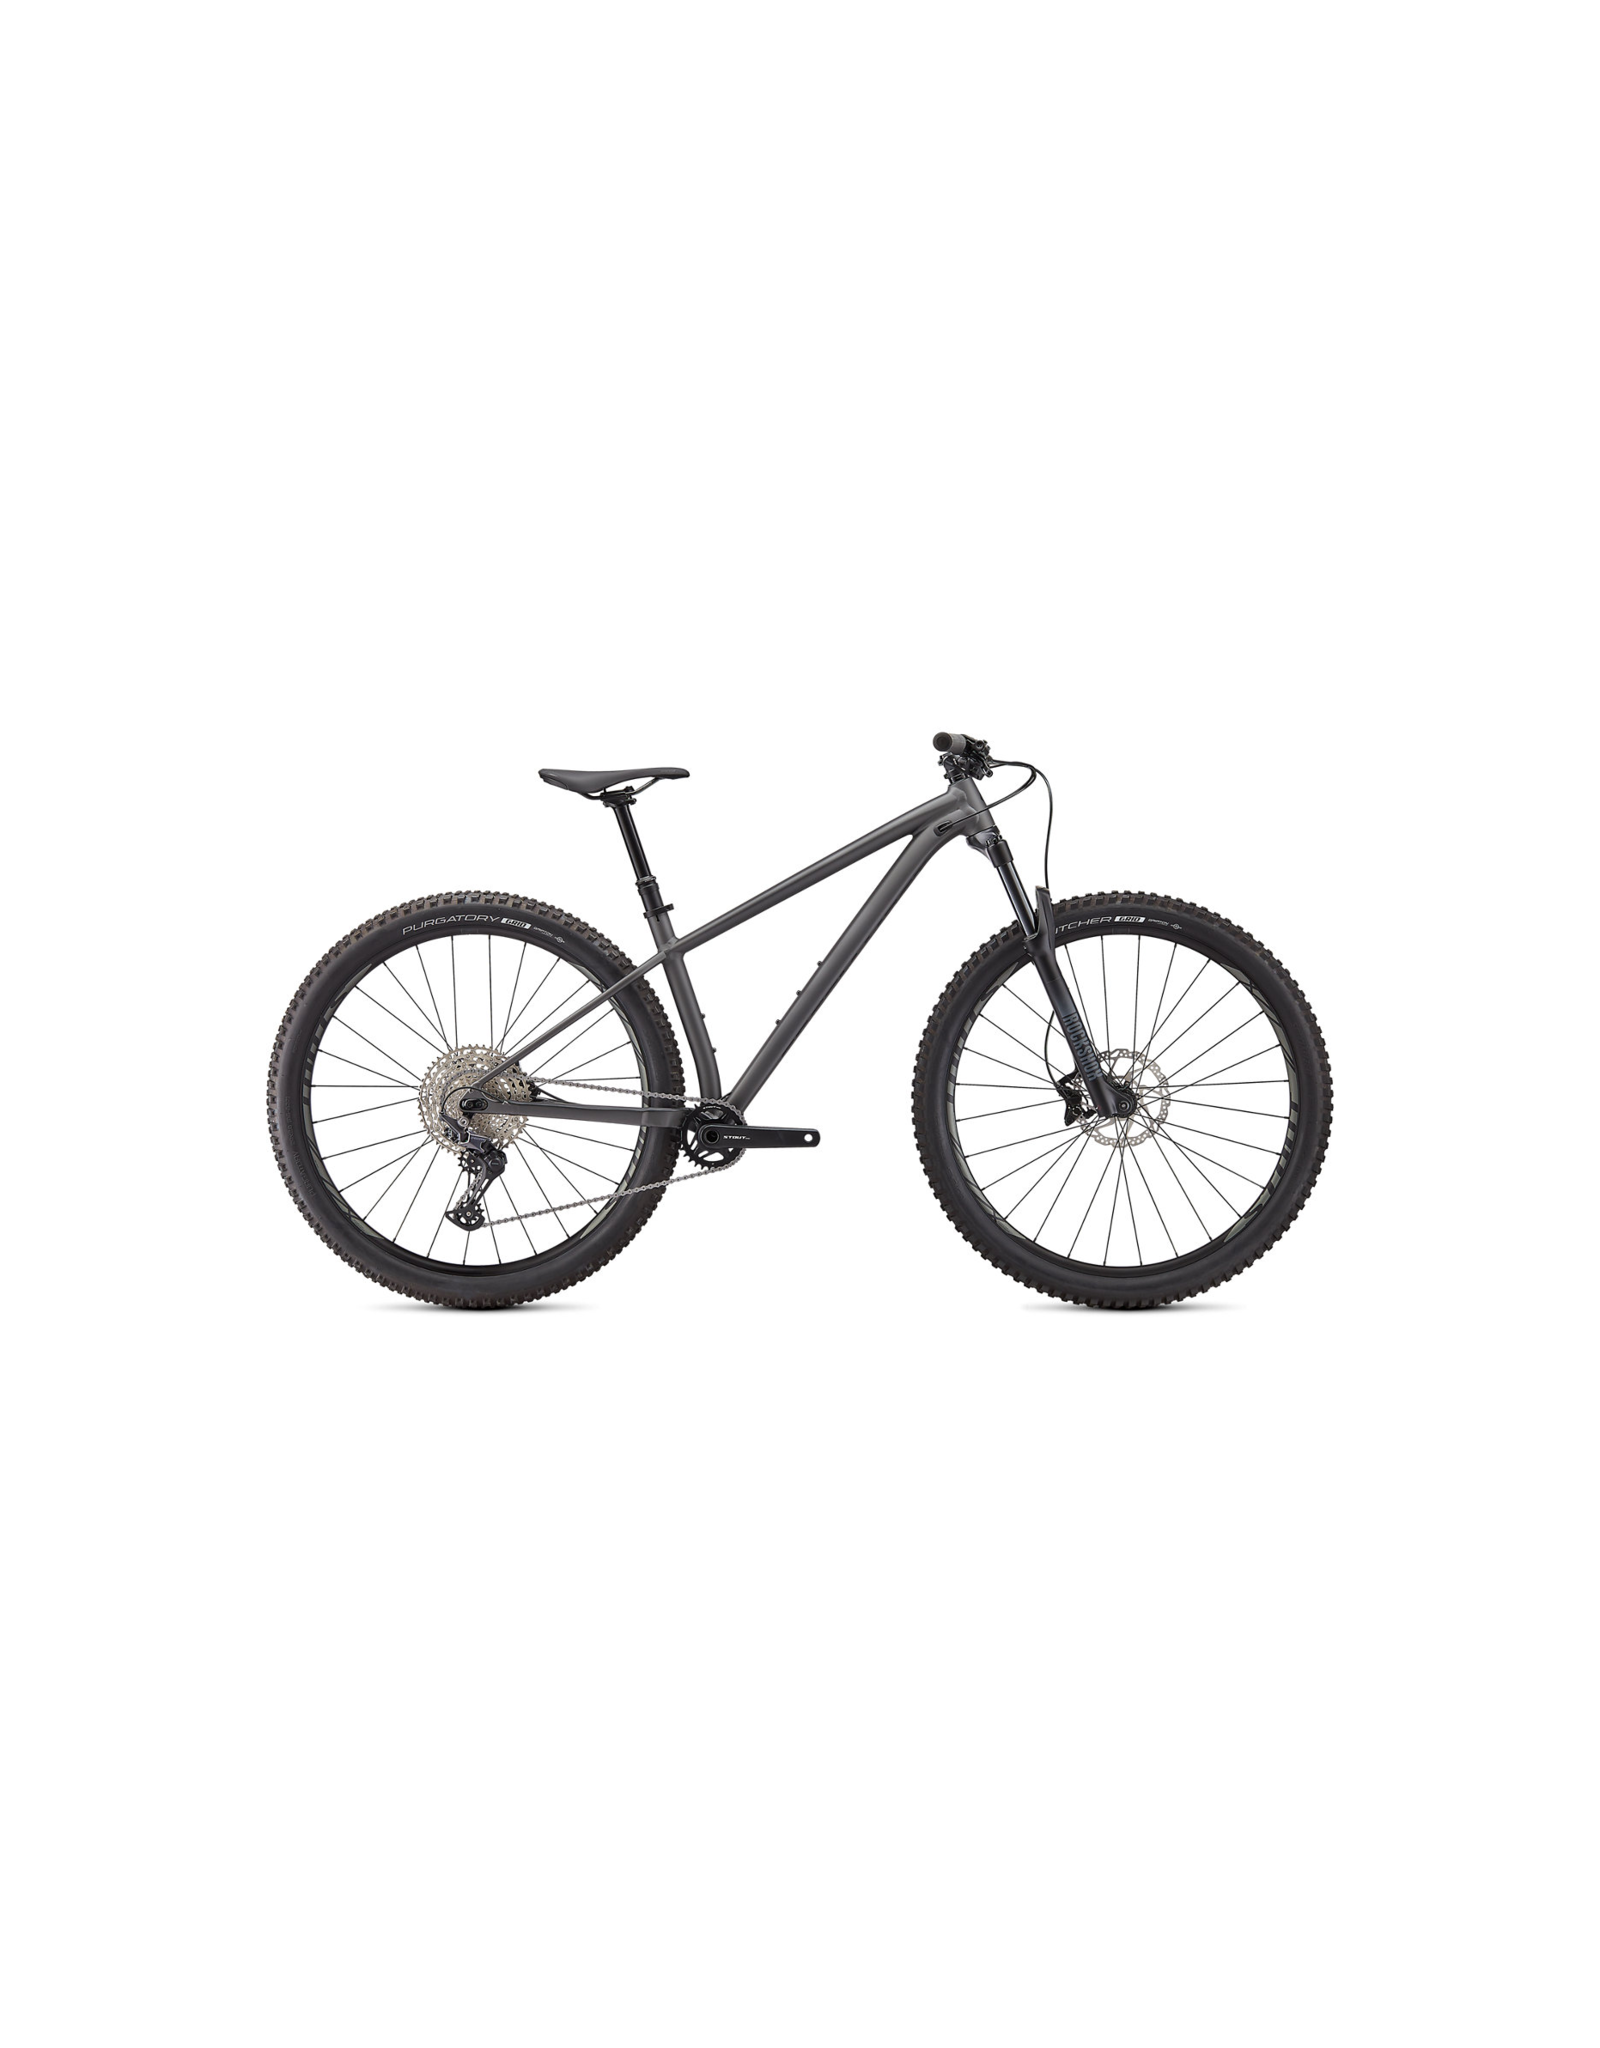 SPECIALIZED 2021 Specialized Fuse Comp 29 - SMK/BLK - Large